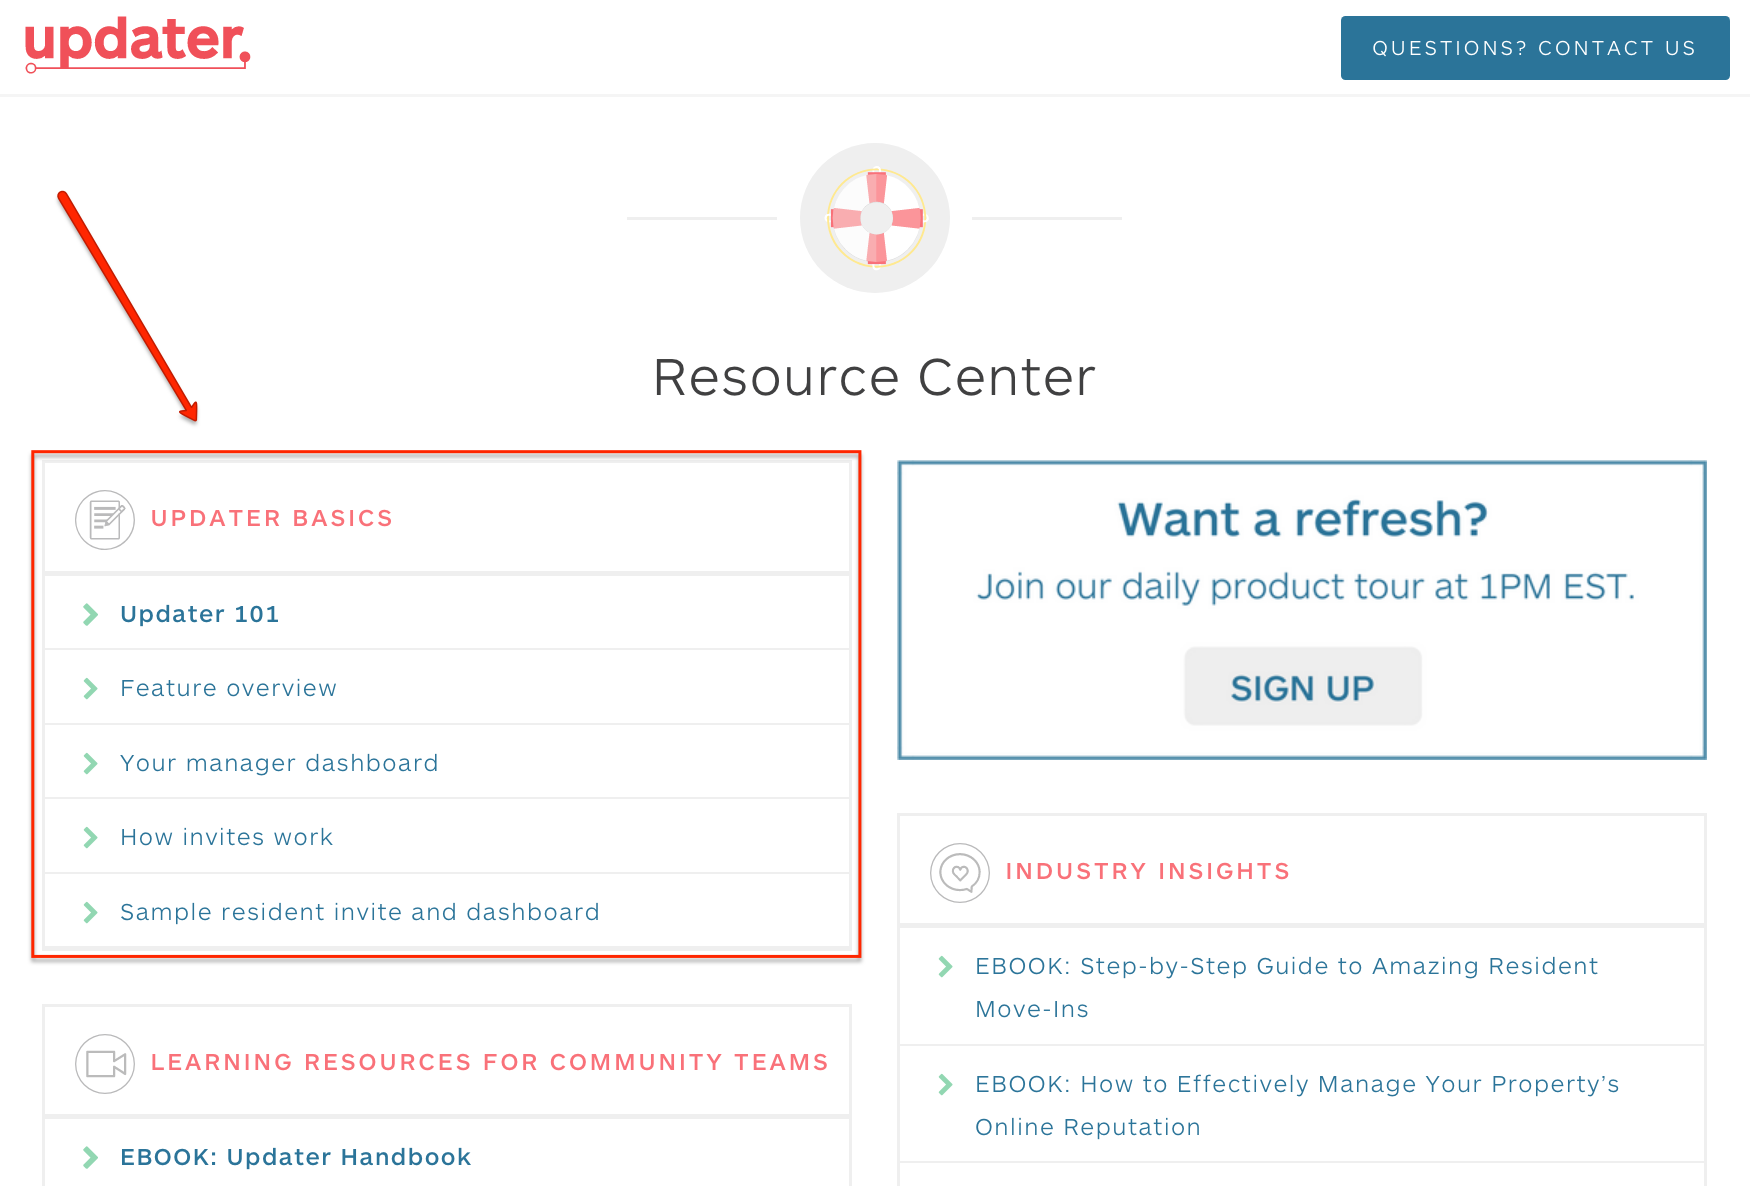 updater_basics_resource_center.png